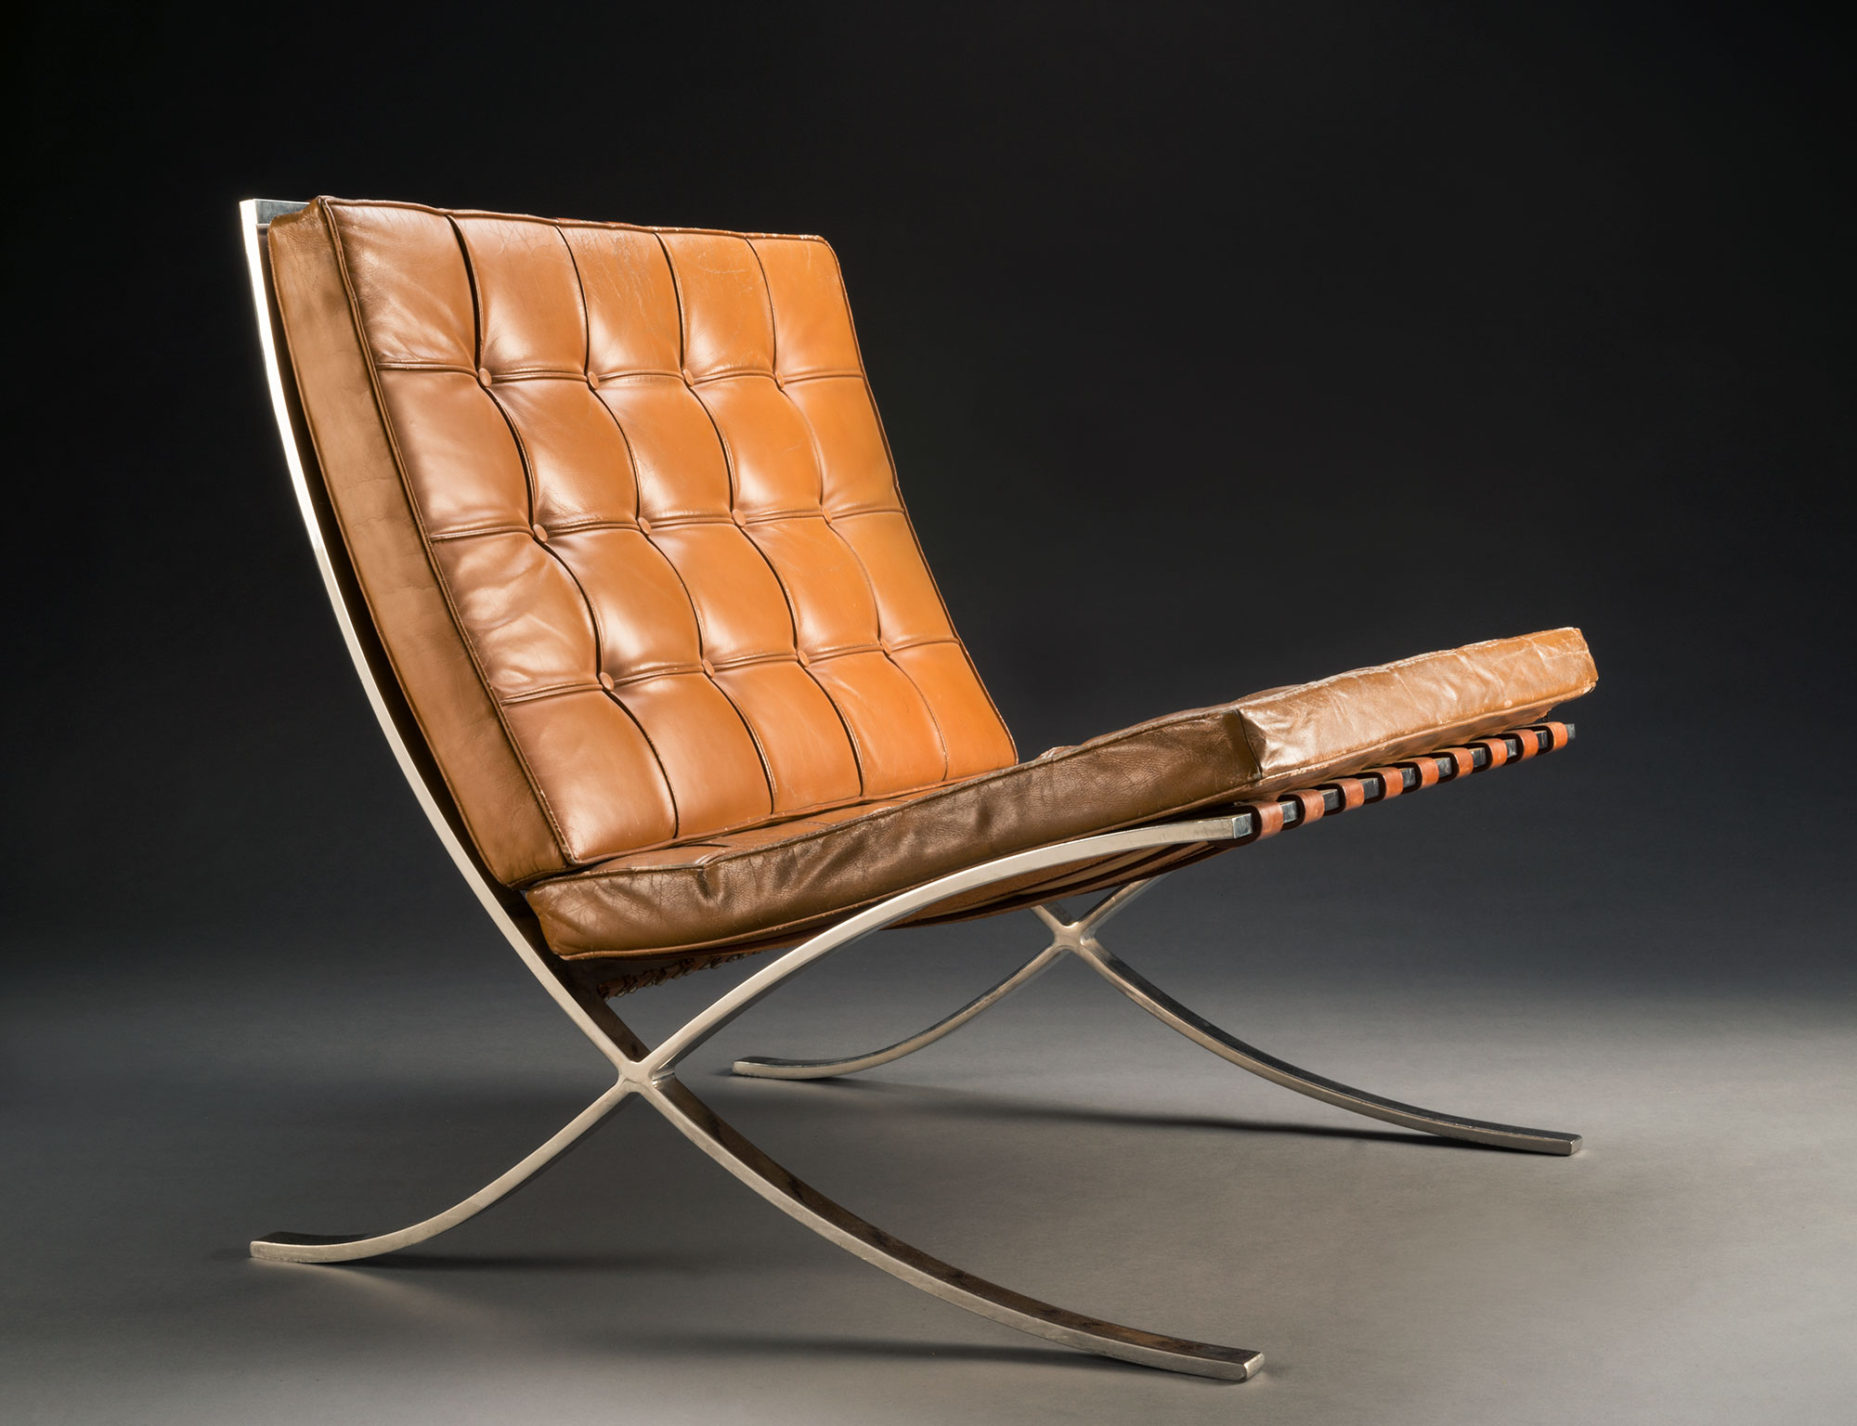 Strap-steel-framed chair with crisscrossing legs and tan leather-covered cushions.